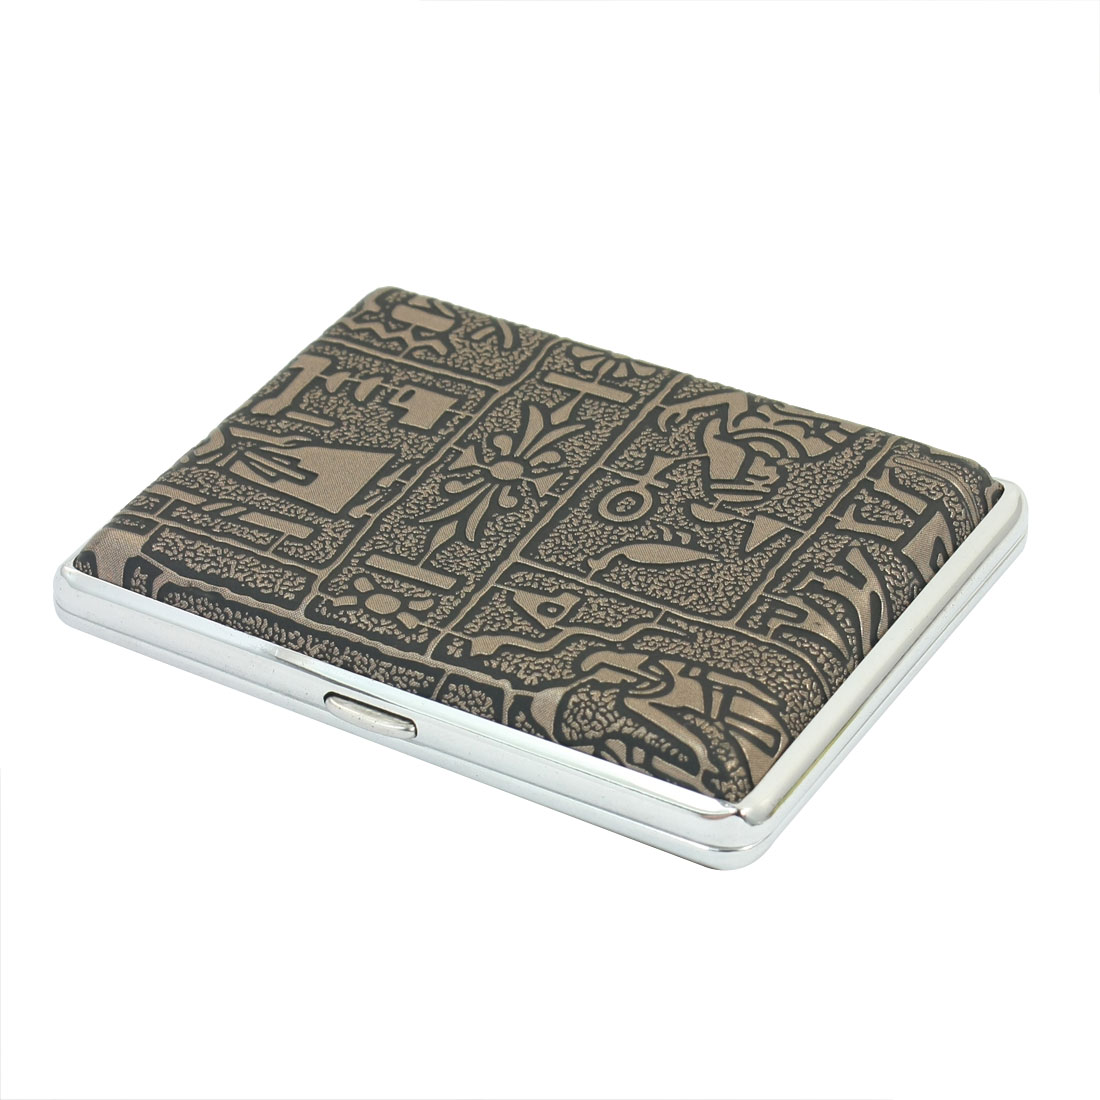 Bronze Tone Egyptian Pattern Faux Leather Coated Two Sides Hinge Closure Metal Case Box Holder Container for 16pcs Cigarette